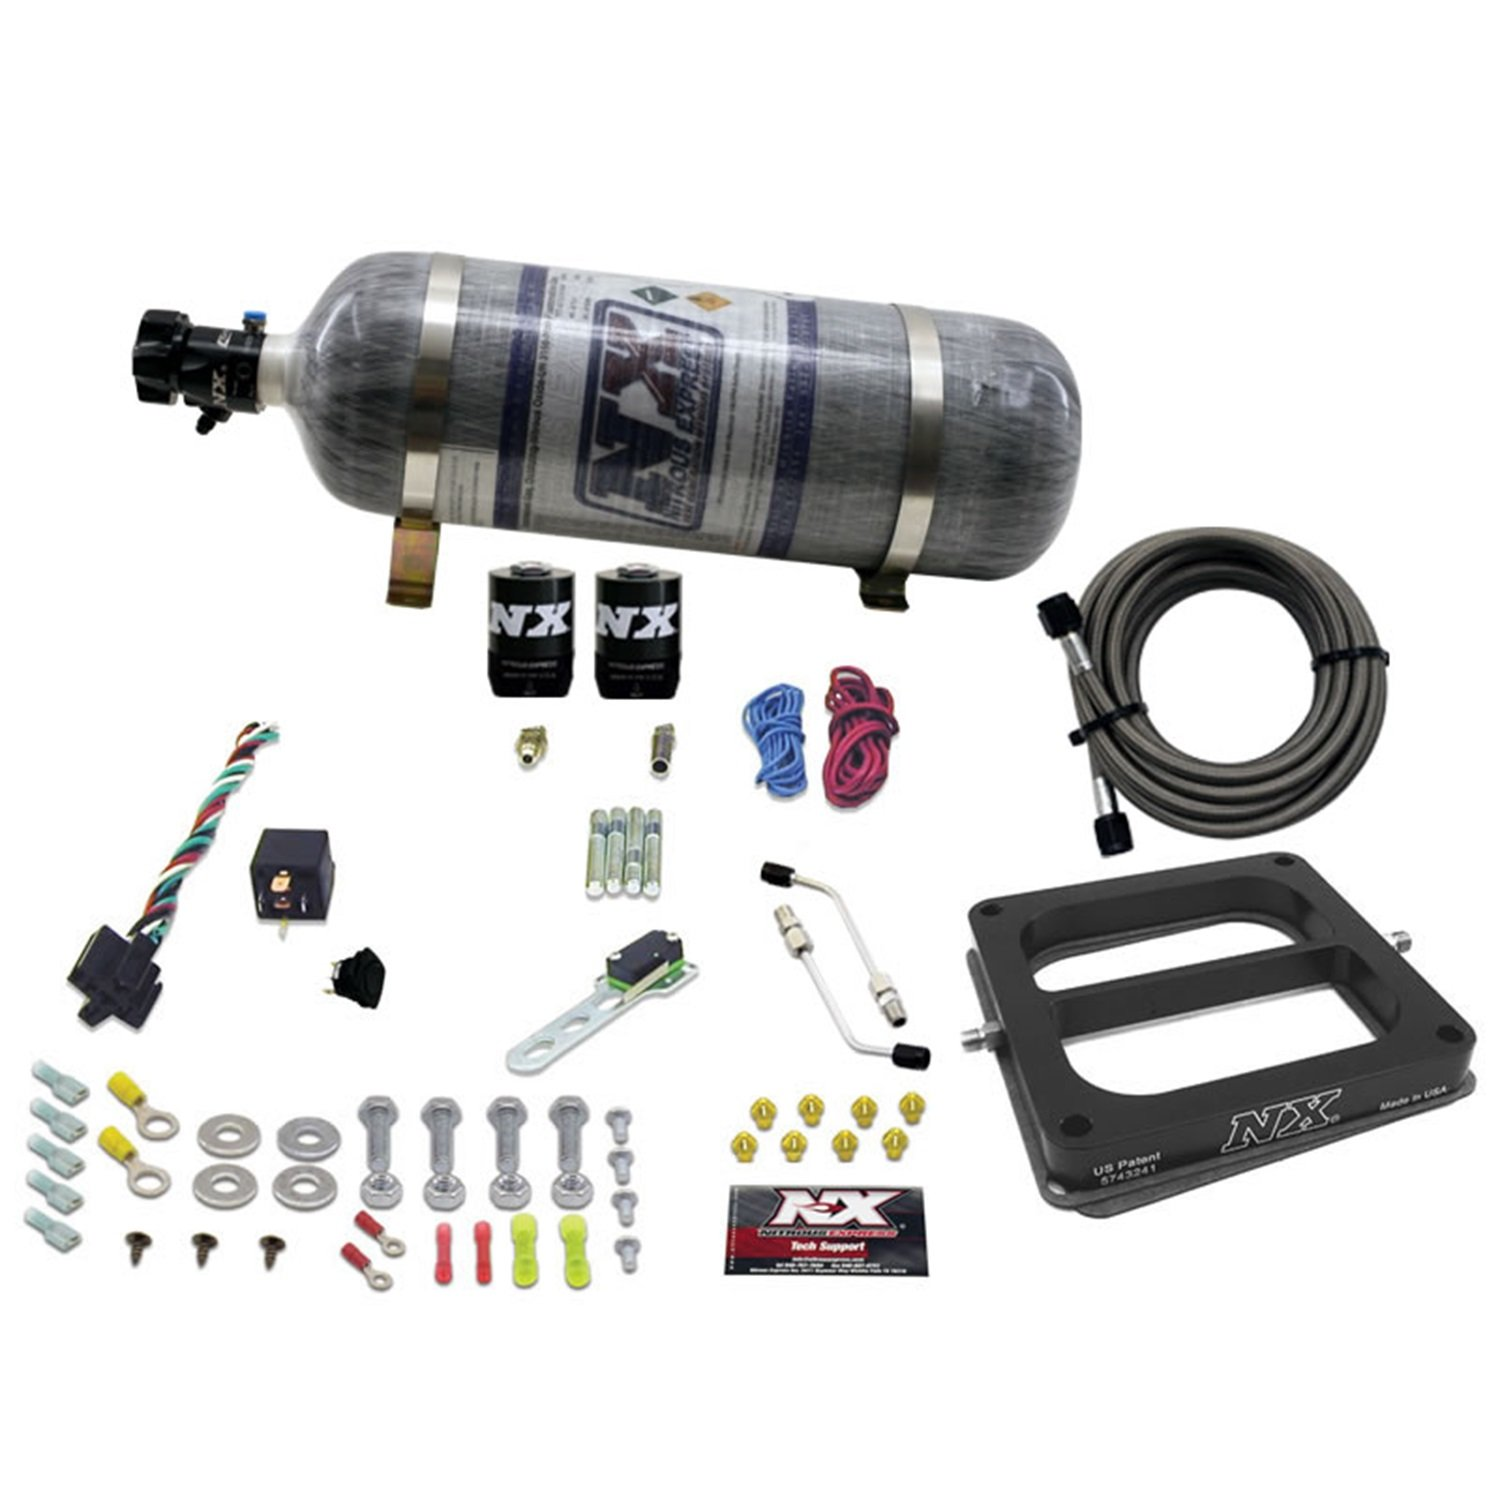 Nitrous Express 50075-12 100-500 HP Dominator Alcohol Conventional Pro Power Plate System with 12 lbs Composite Bottle